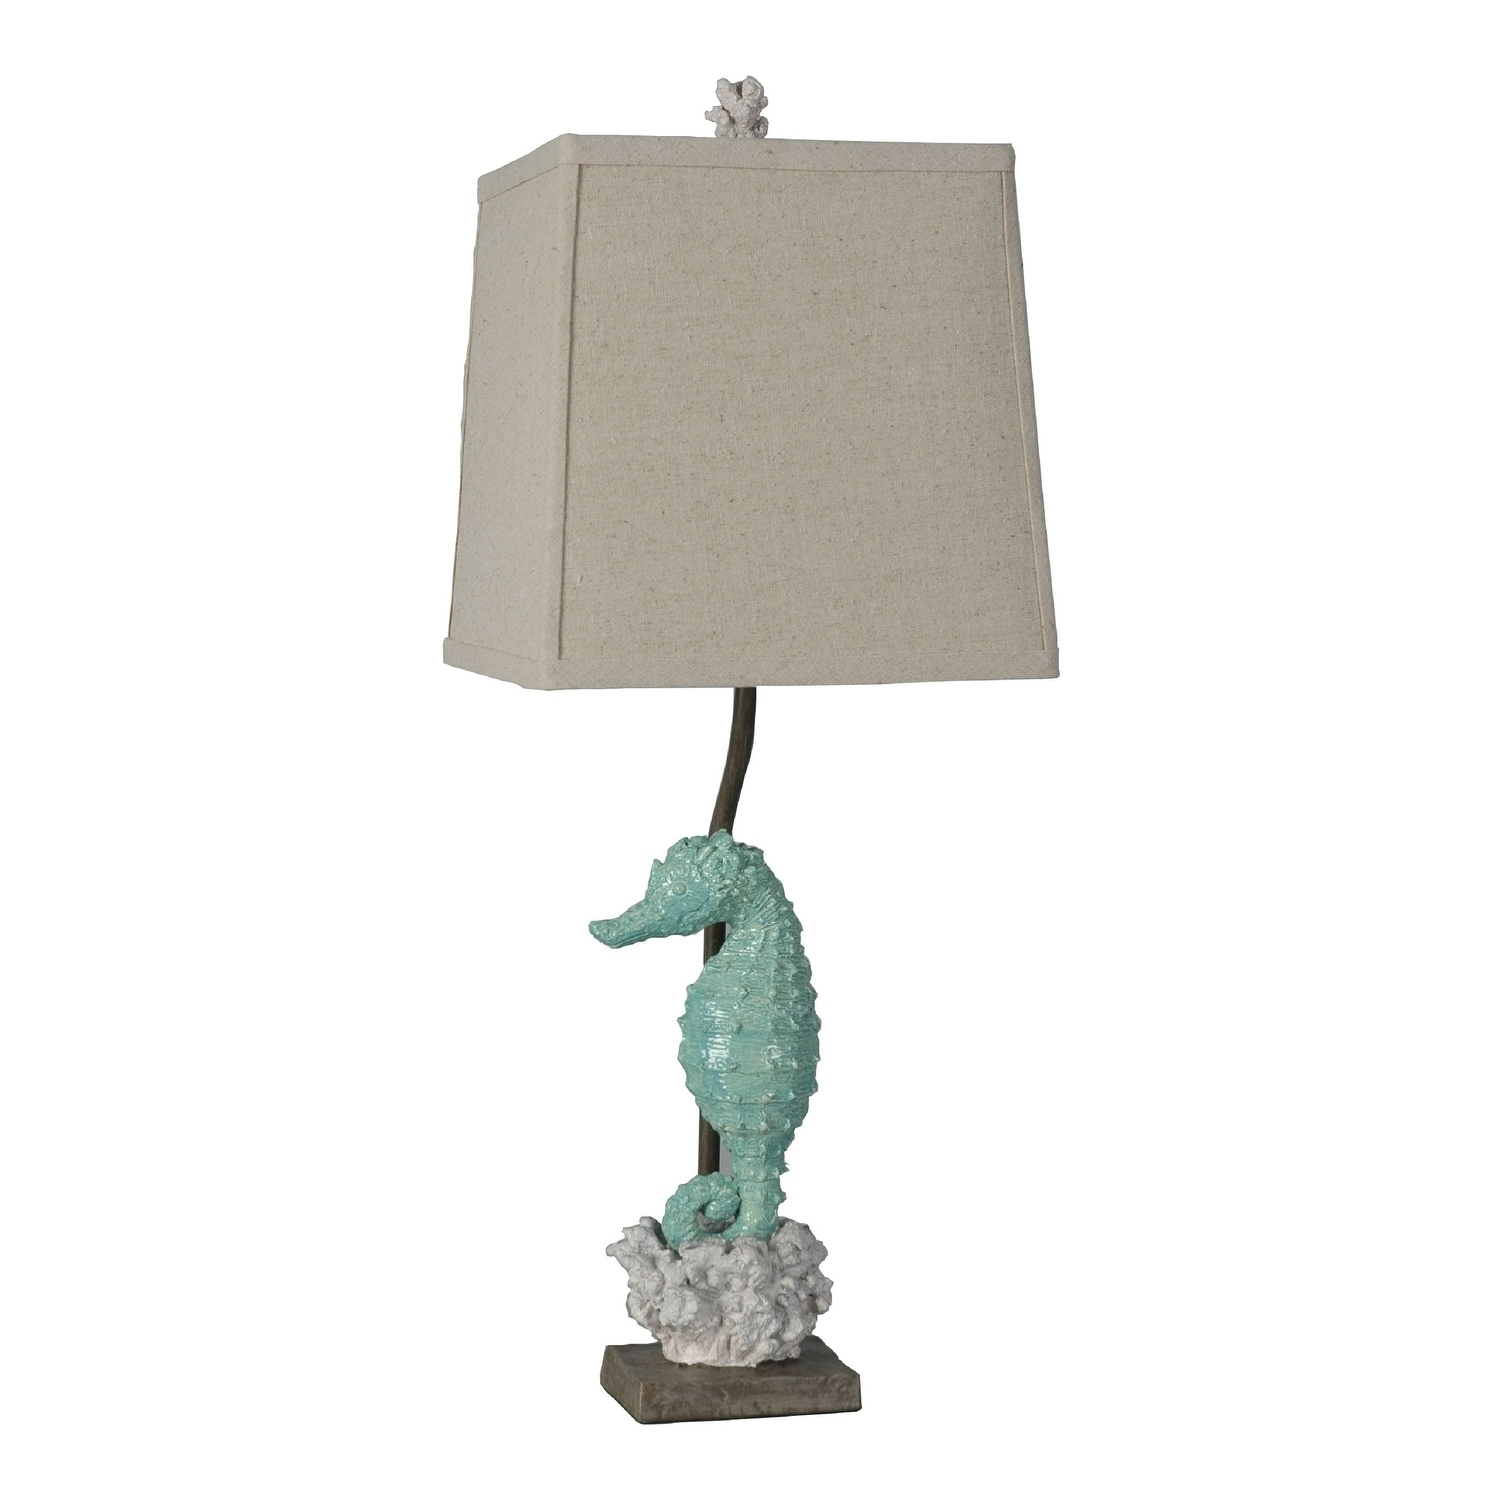 Lamps Per Se 26 5 Inch Sea Blue Seahorse White Coral Table Lamp Set Of 2 N A On Sale Overstock 21424763